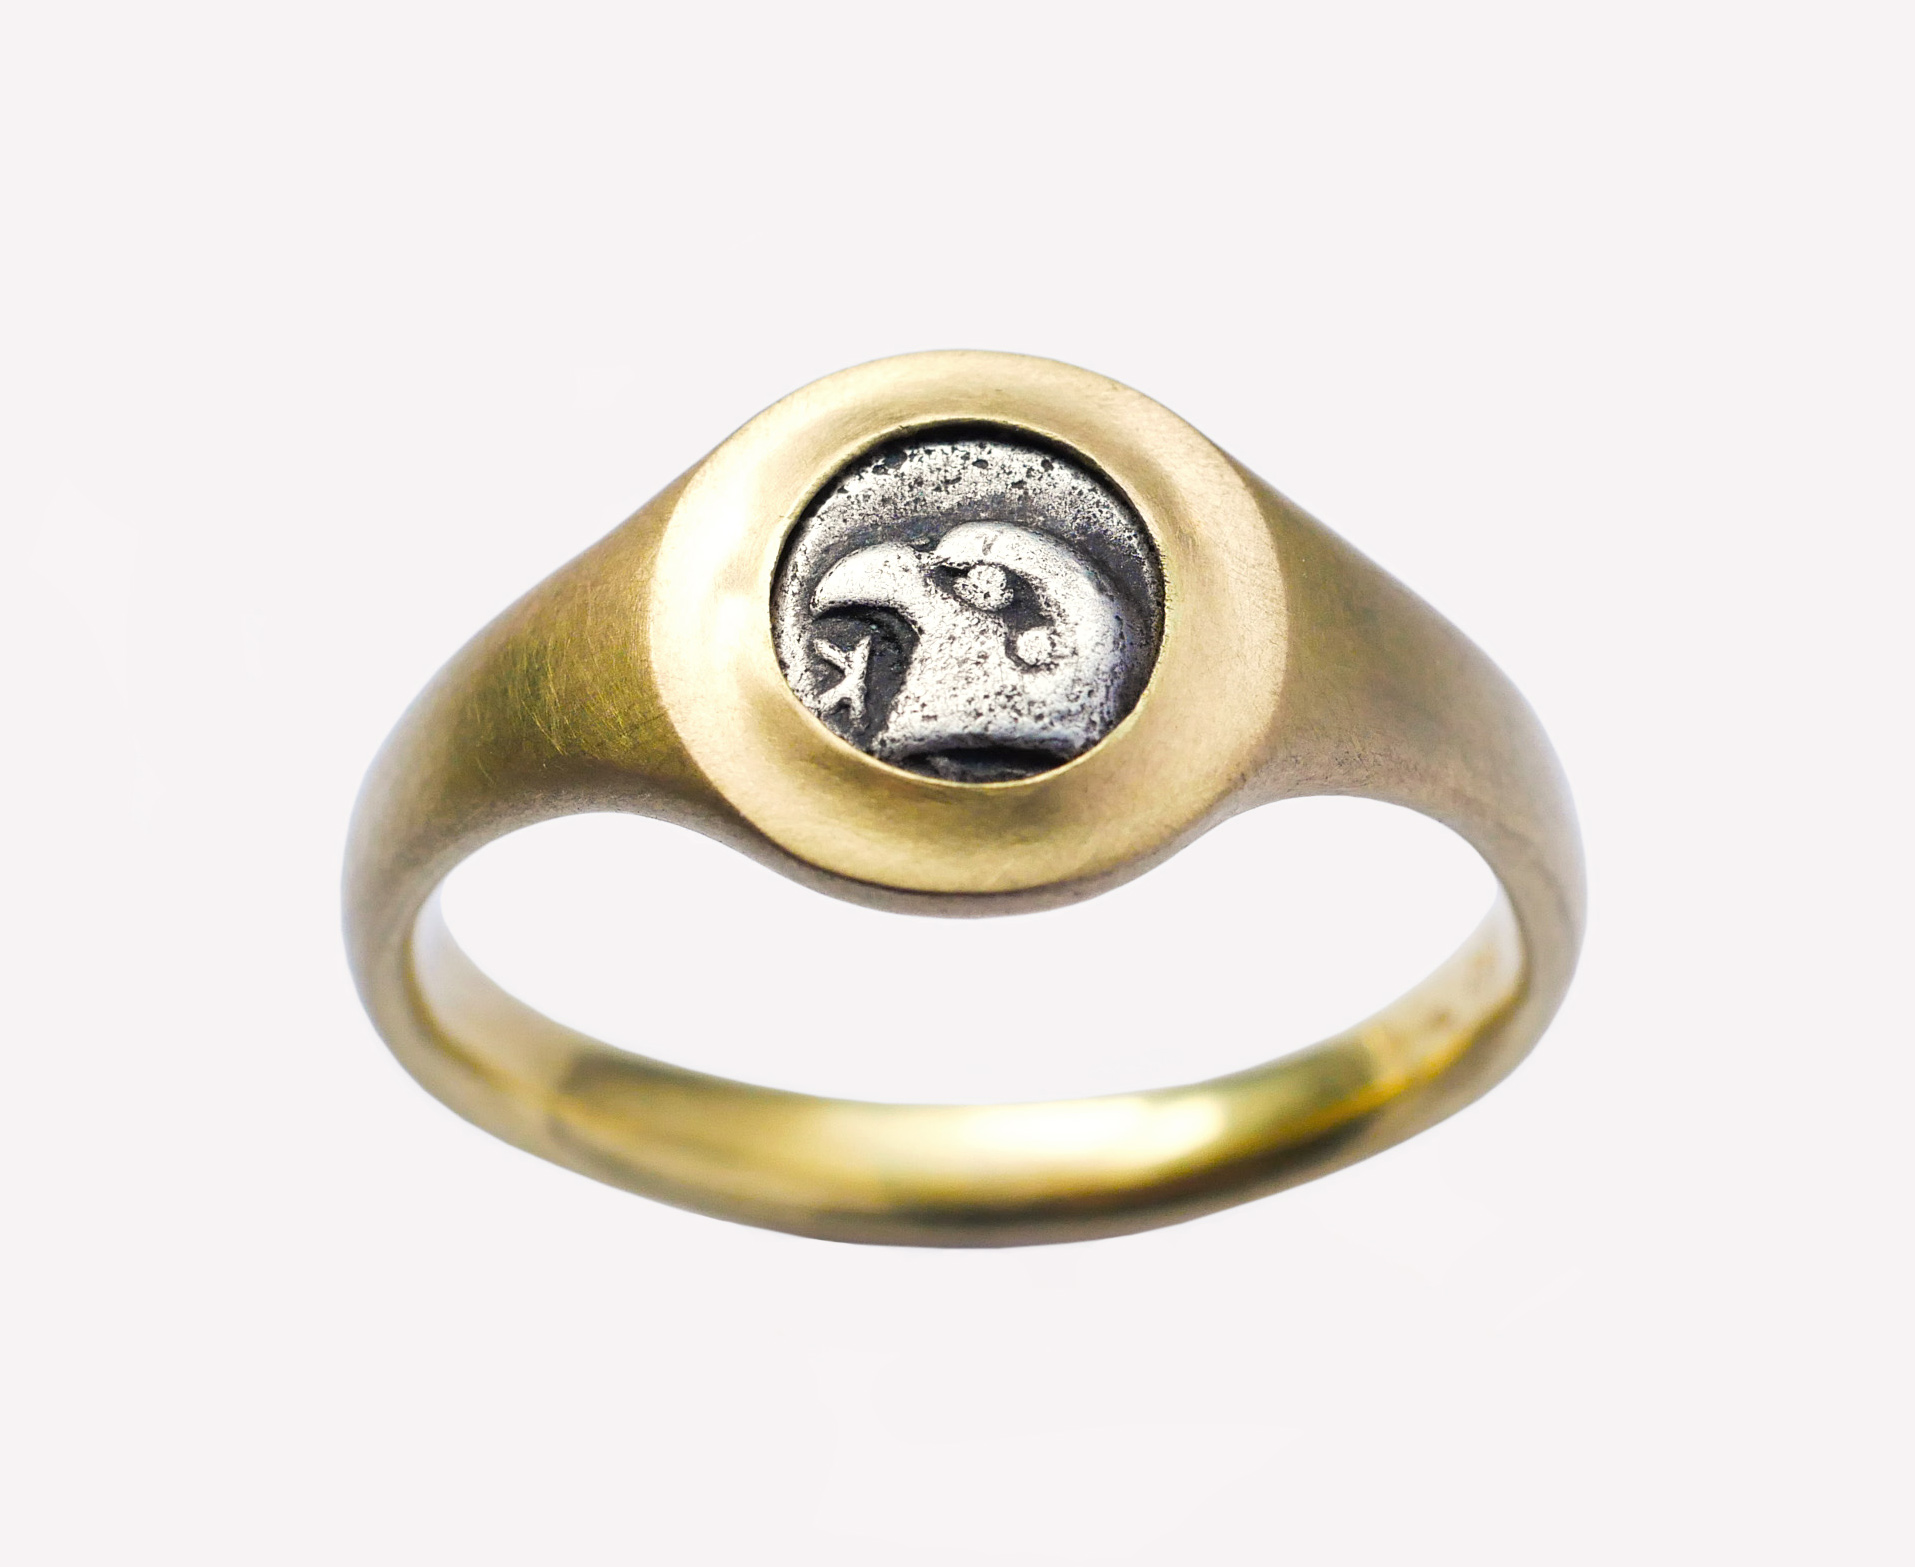 ring_greekcoin_aeolis4.jpg